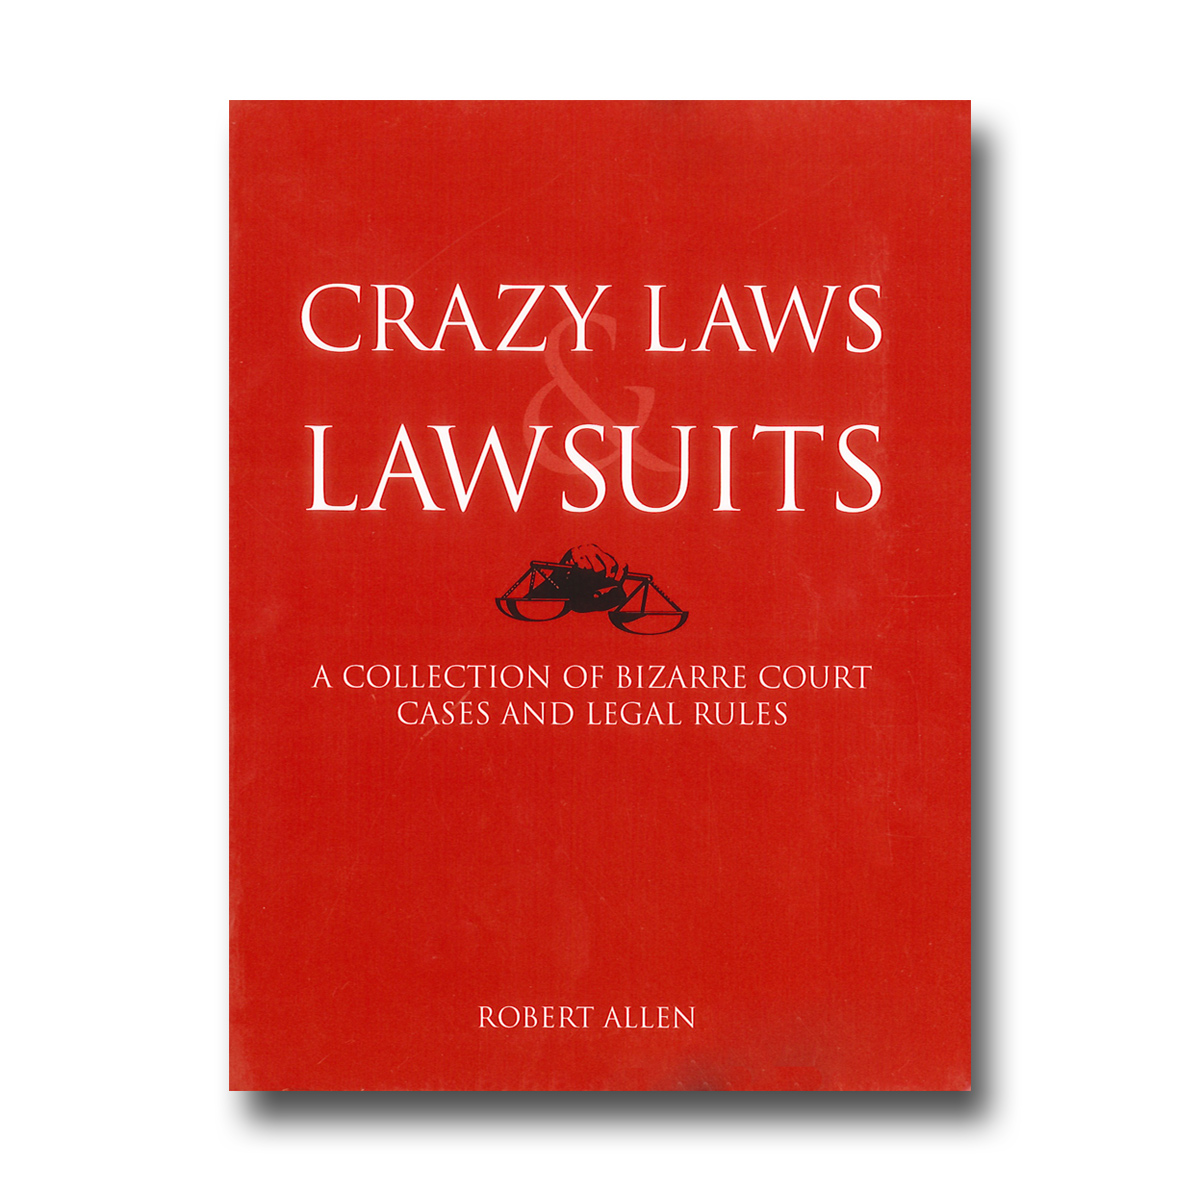 essay on stupid laws Ah yes, laws, the rules which weird stuff 10 true stories of 10 absurd laws from around the world jcaesar55 january 5, 2012 share 662 stumble 11.